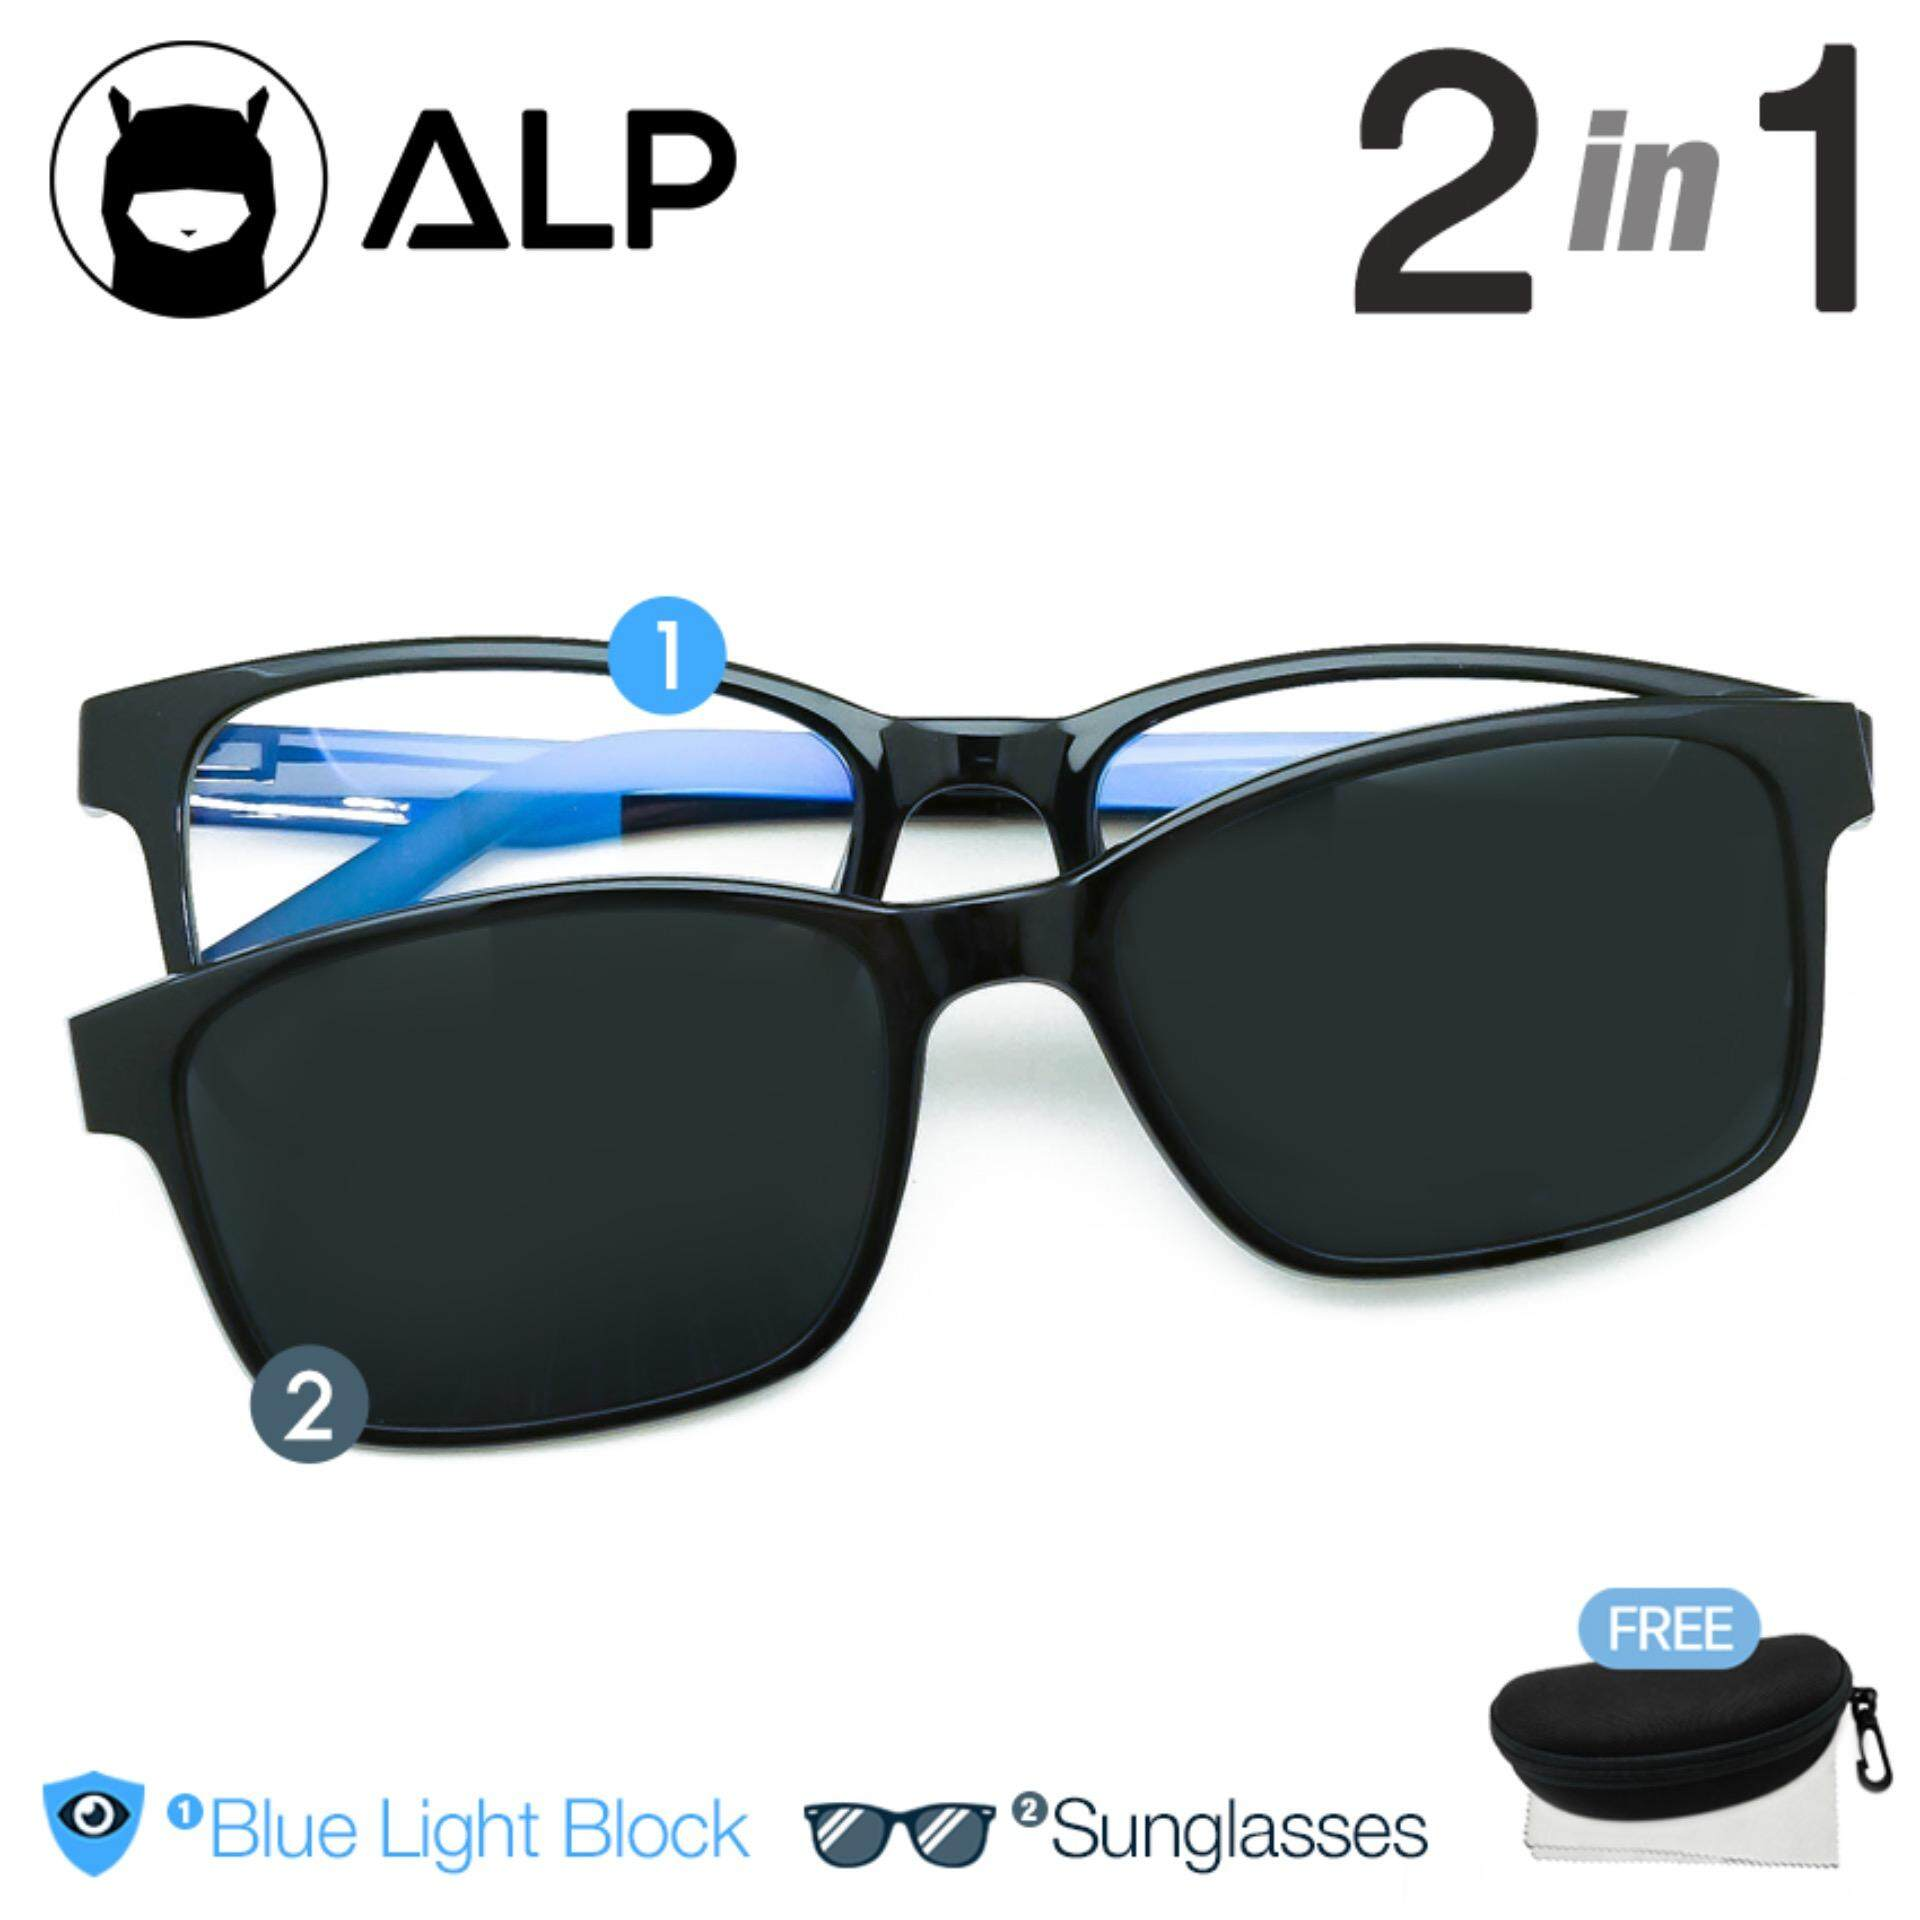 505d9d4c0bf Sell alp polarized multi cheapest best quality